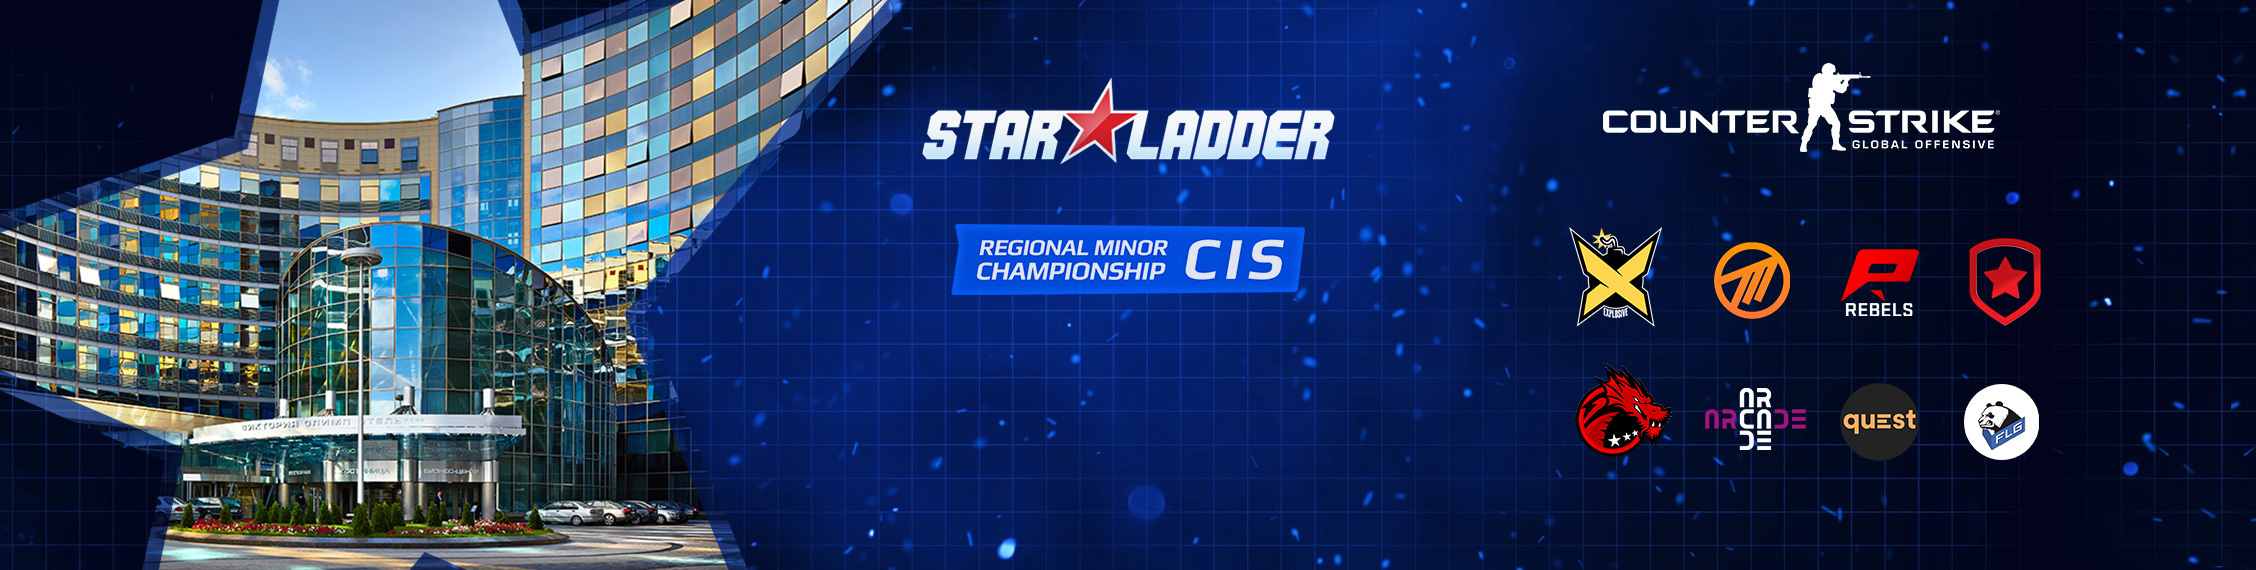 Regional Minor Championship: CIS (finished)